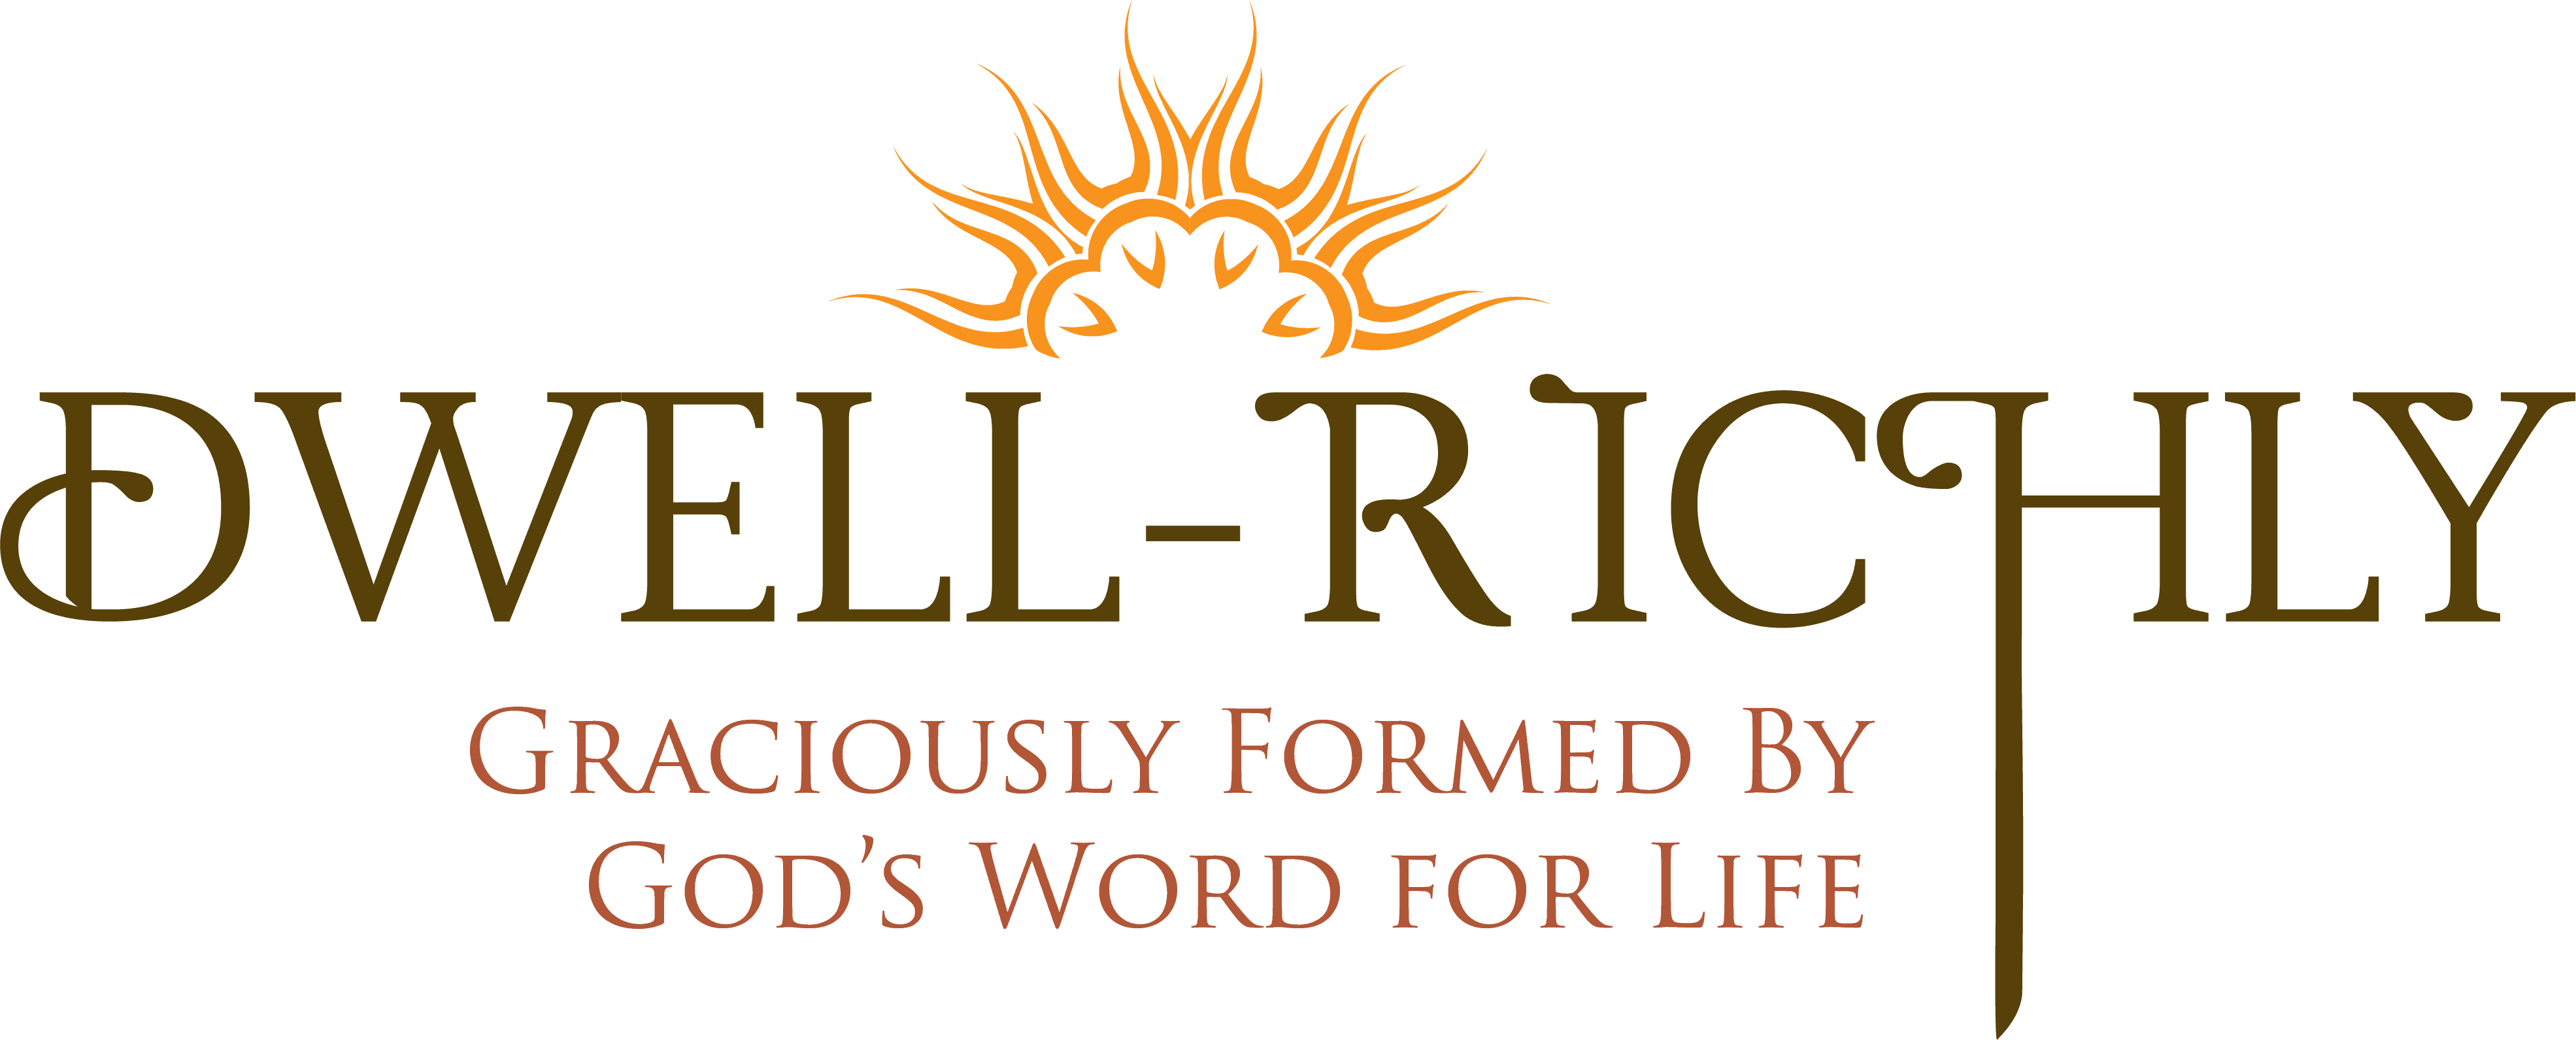 https://www.sumydesigns.com/wp-content/uploads/2016/06/Dwell-Richly_Logo_Color.png